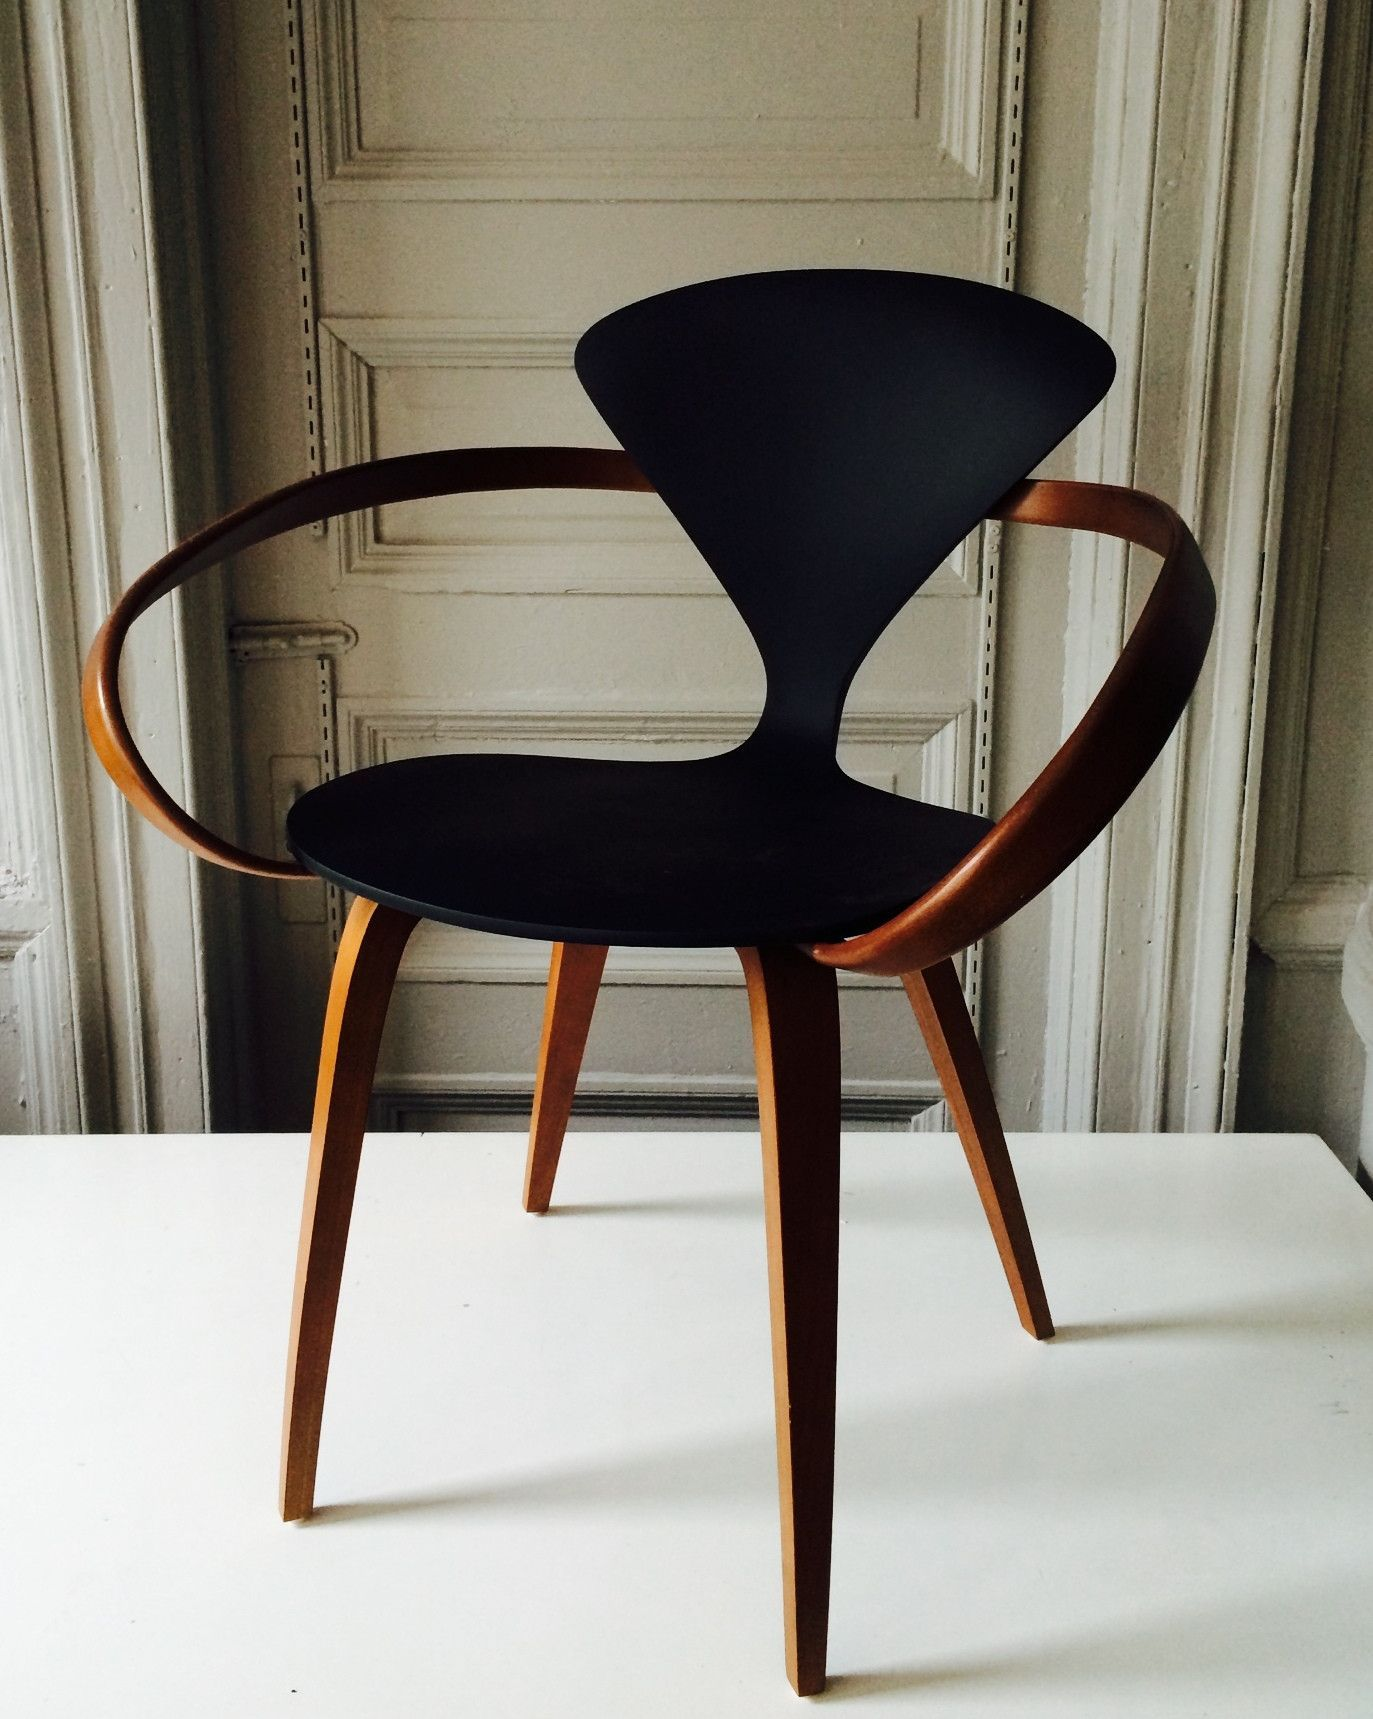 Form Black & wood cherner armchair The way that the armrests